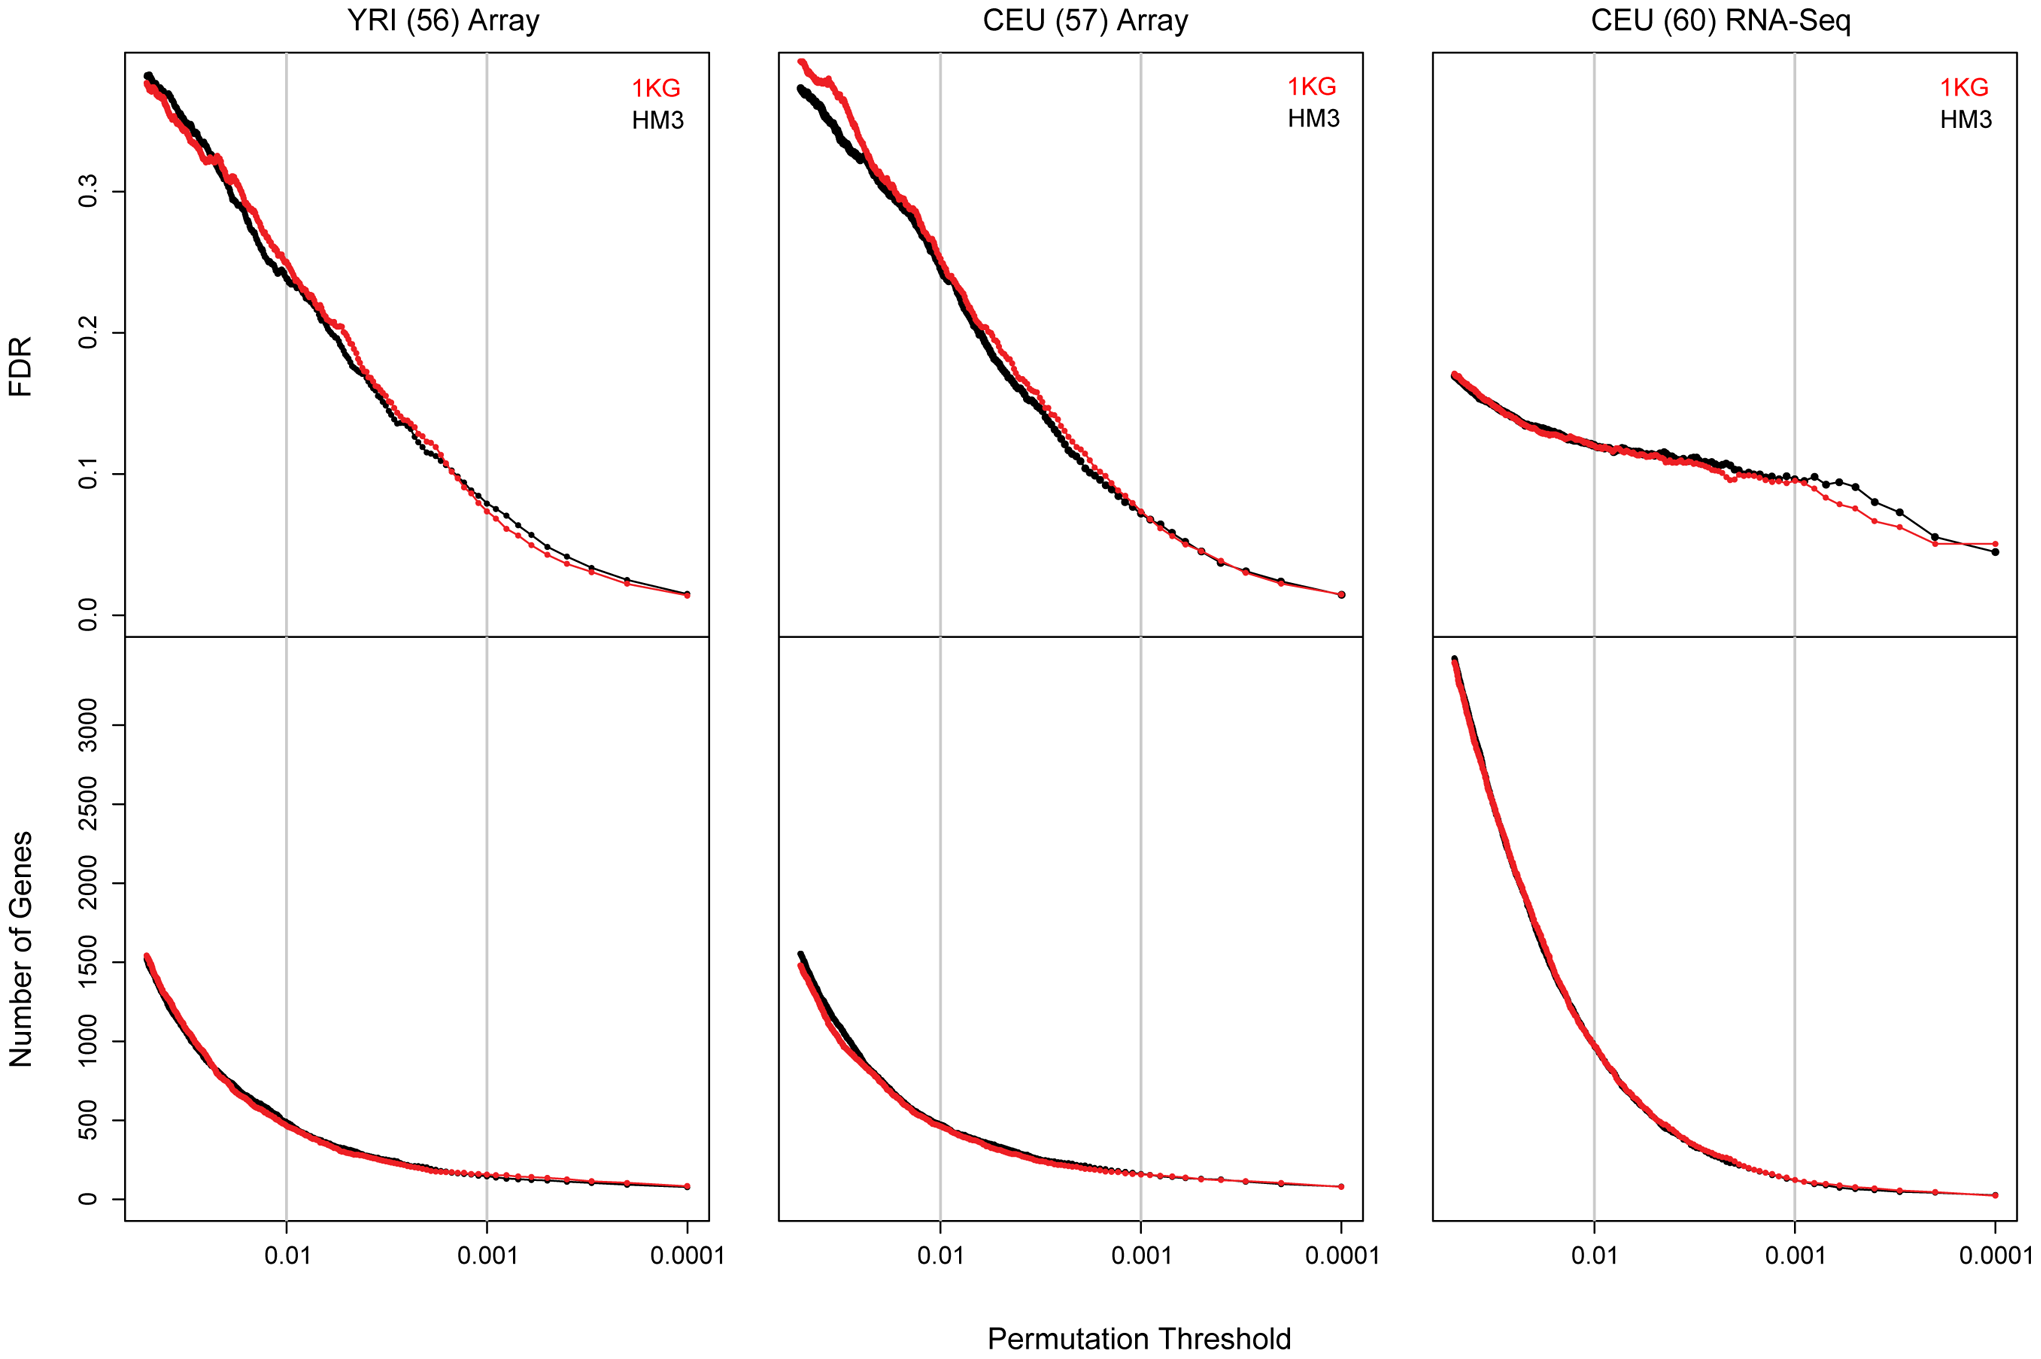 Comparison of eQTL discovery in HapMap 3 and 1000 genomes project data.